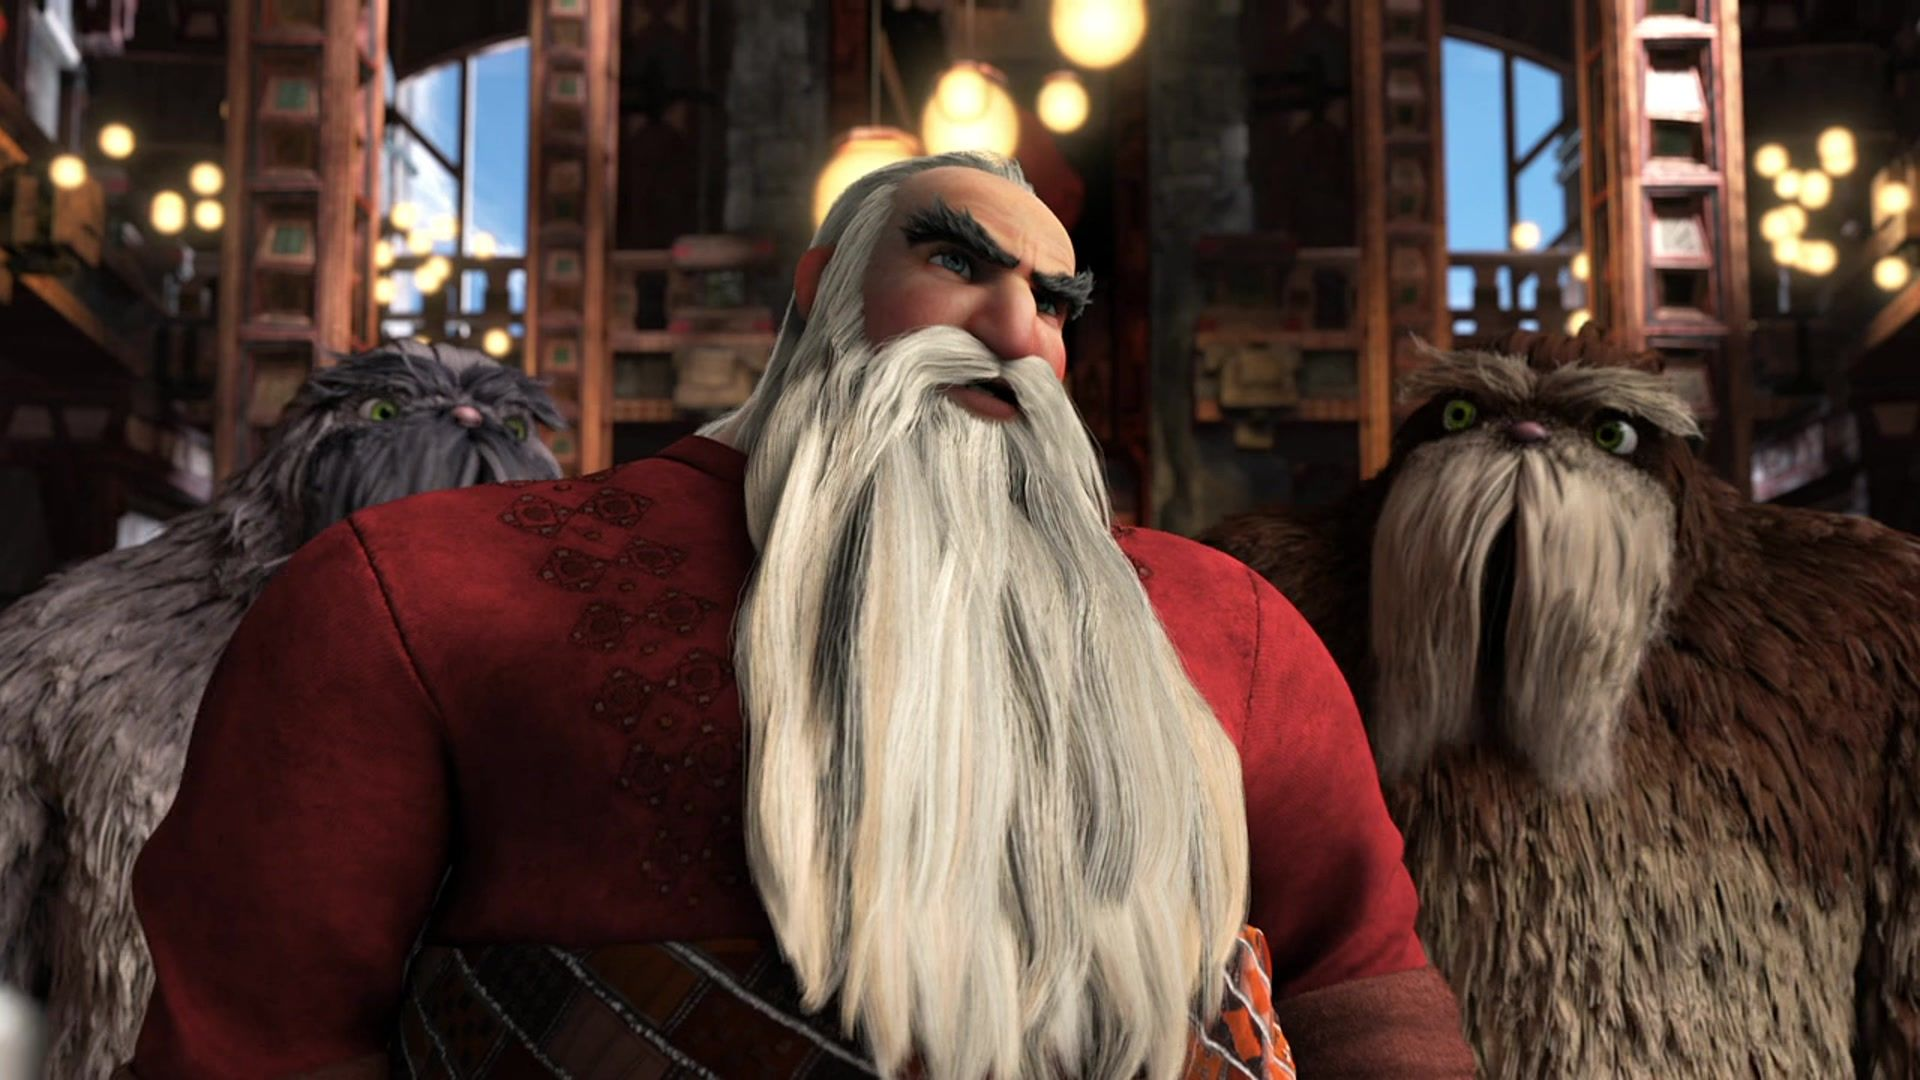 jack frost movie 2012 watch online free